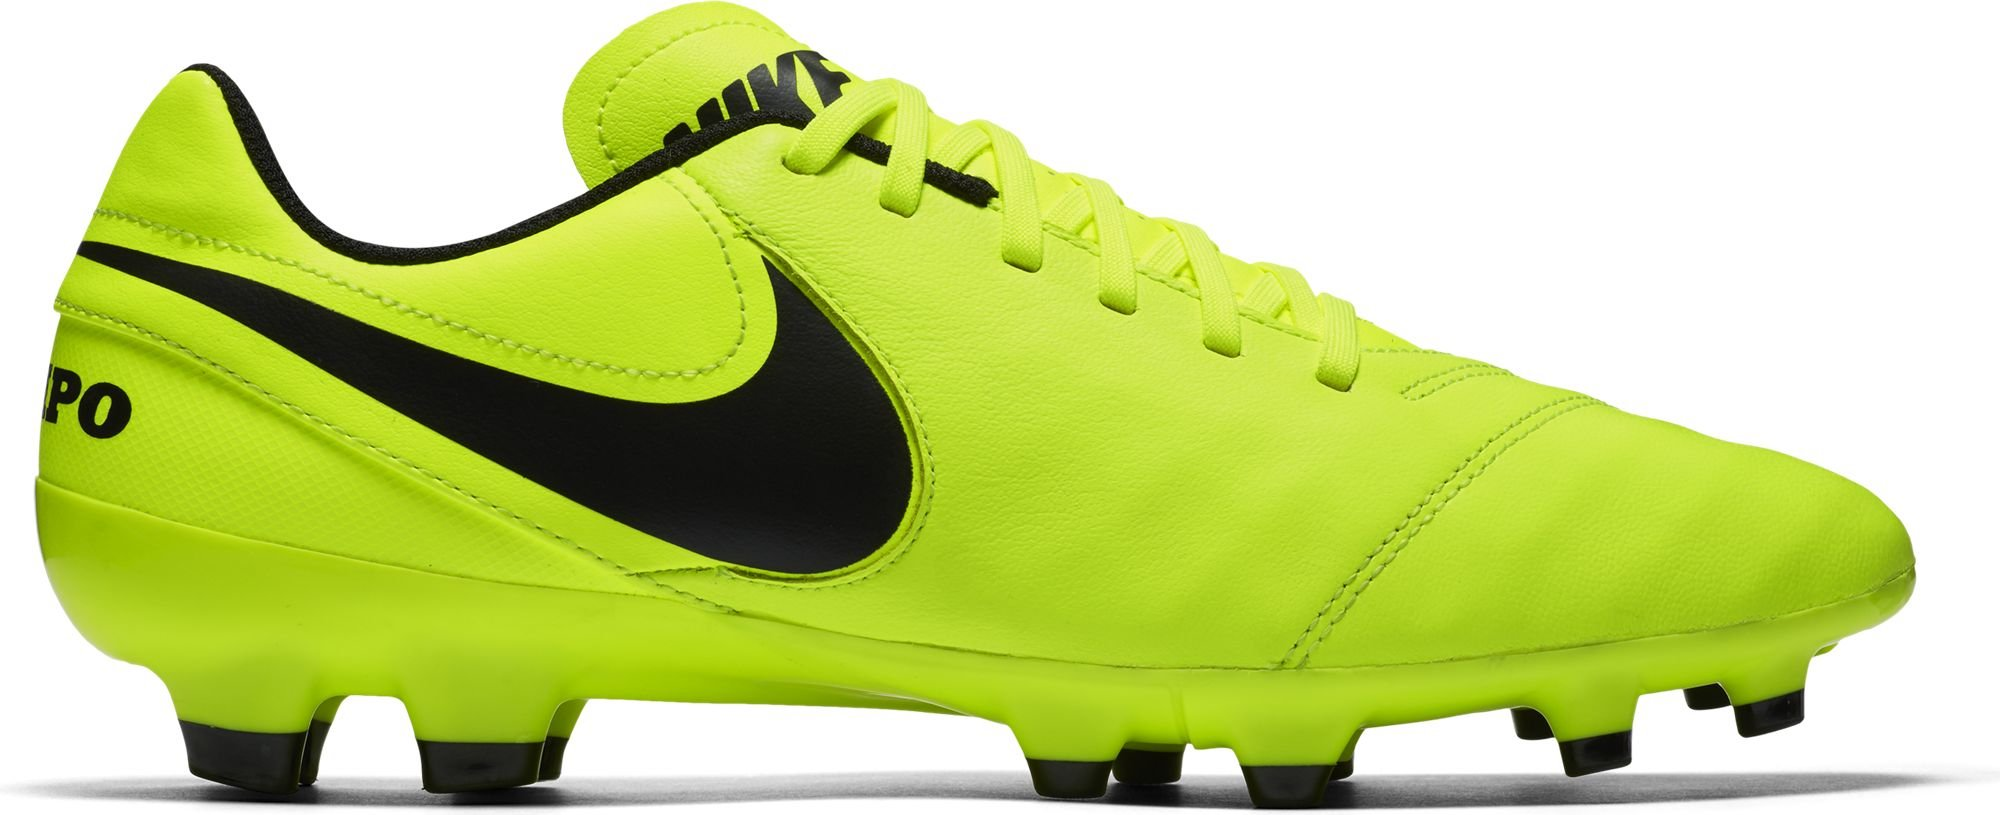 buy online 6a59d 852c2 Galleon - Nike Mens Tiempo Genio II Leather FG Soccer Cleat (Sz. 9.5) Volt